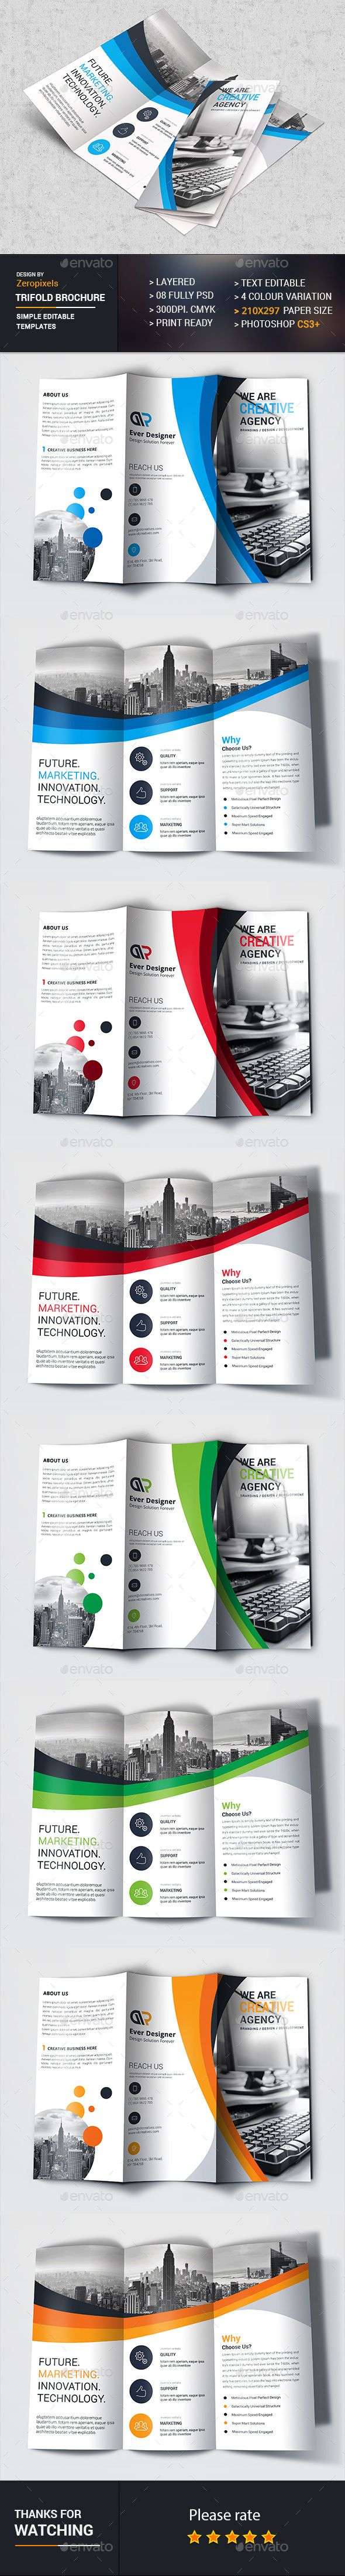 Business Trifold Brochure Template PSD. Download here: https://graphicriver.net/item/business-trifold/17277454?ref=ksioks